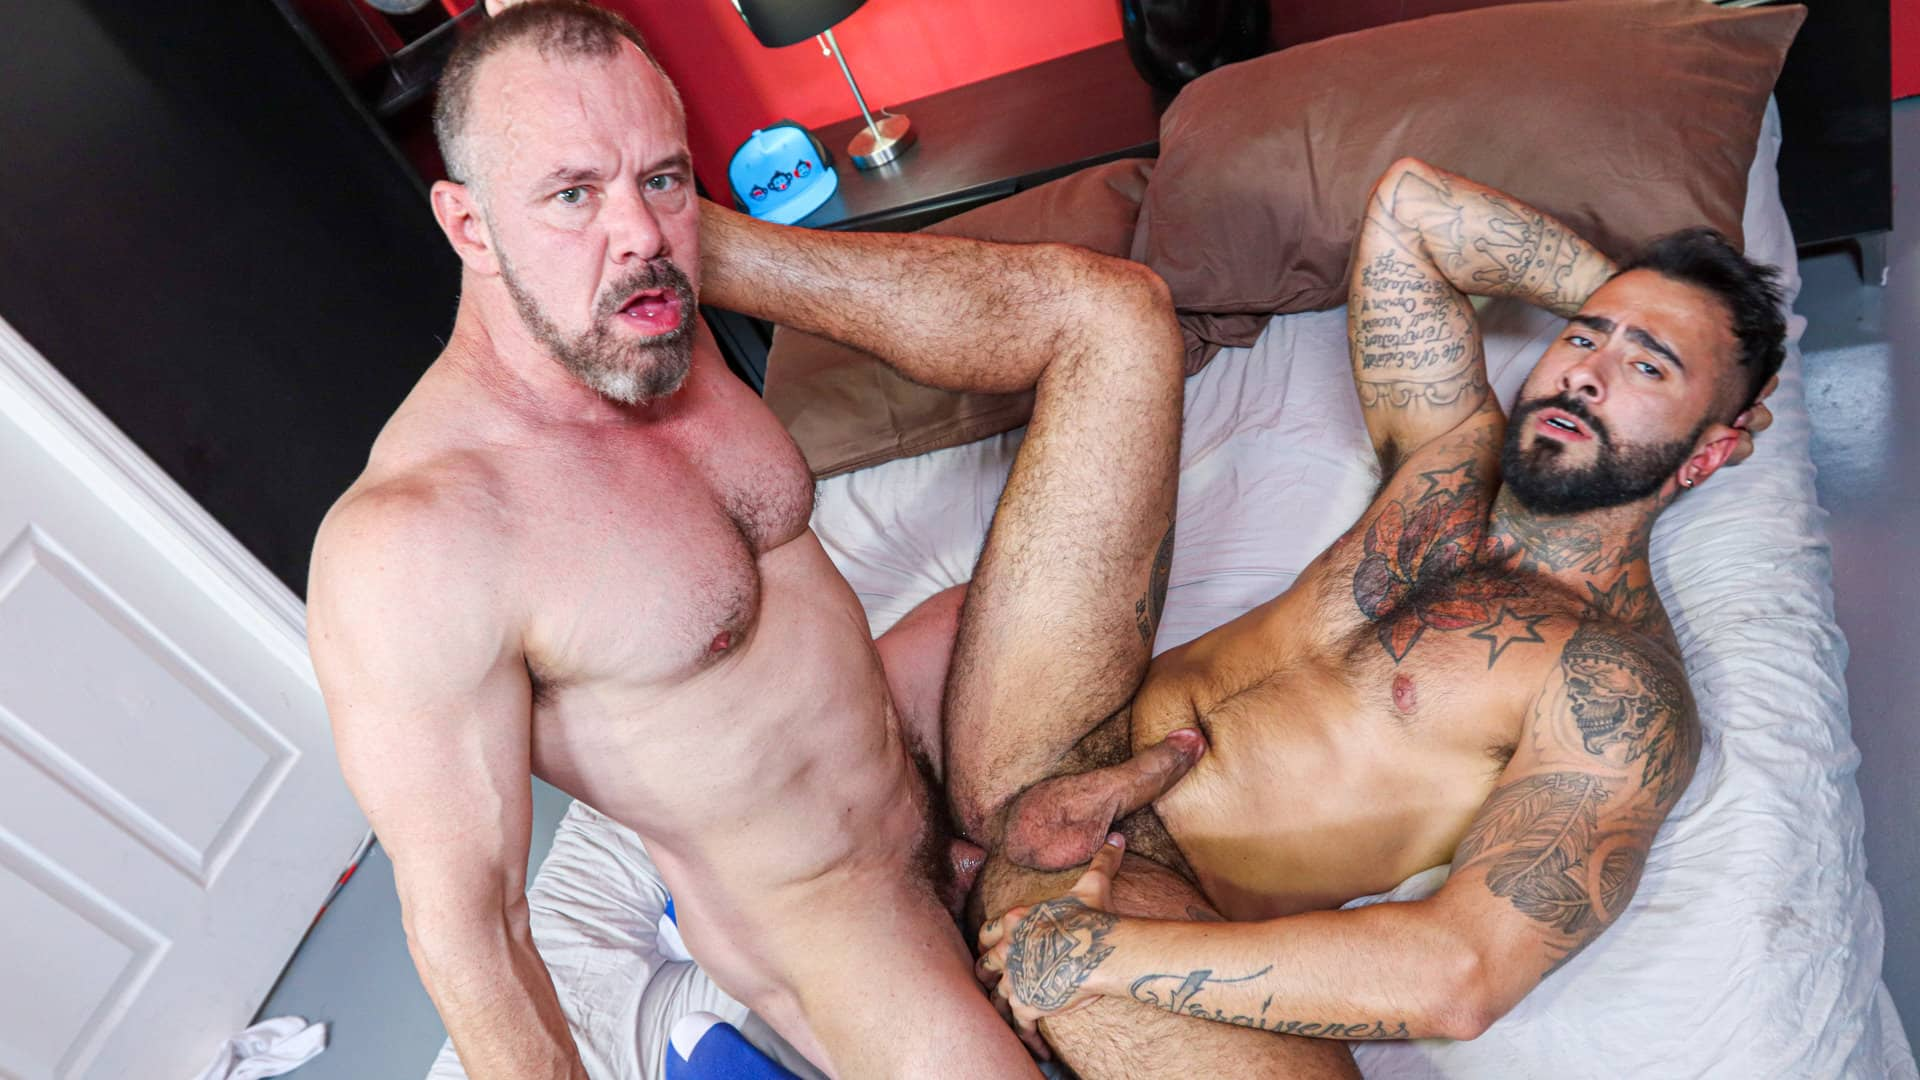 Mature, Passionate and Ready To Fuck – Rikk York and Max Sargent